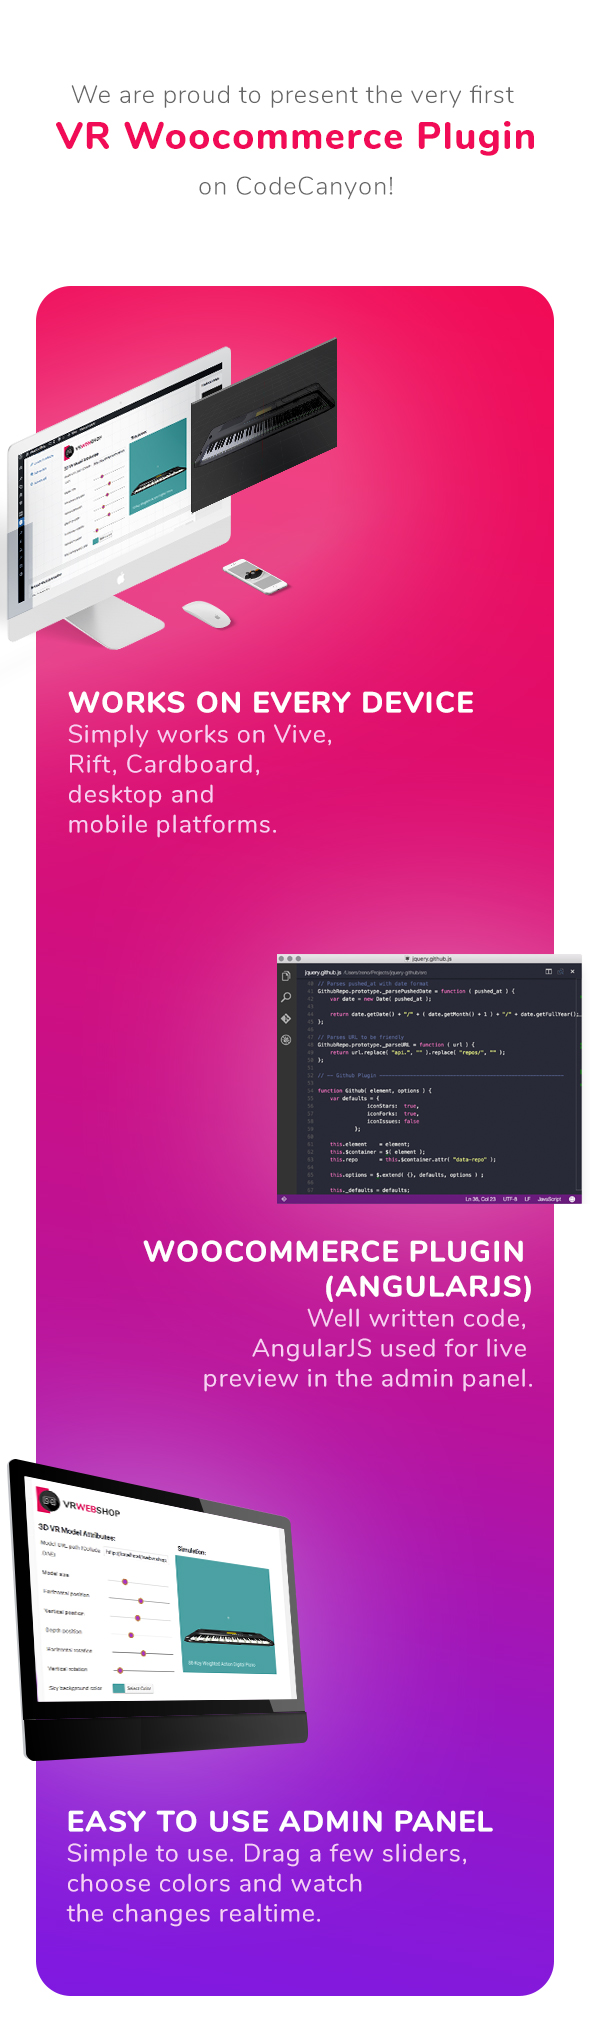 Add 3D models to any Woocommerce shop - Web Virtual Reality 4